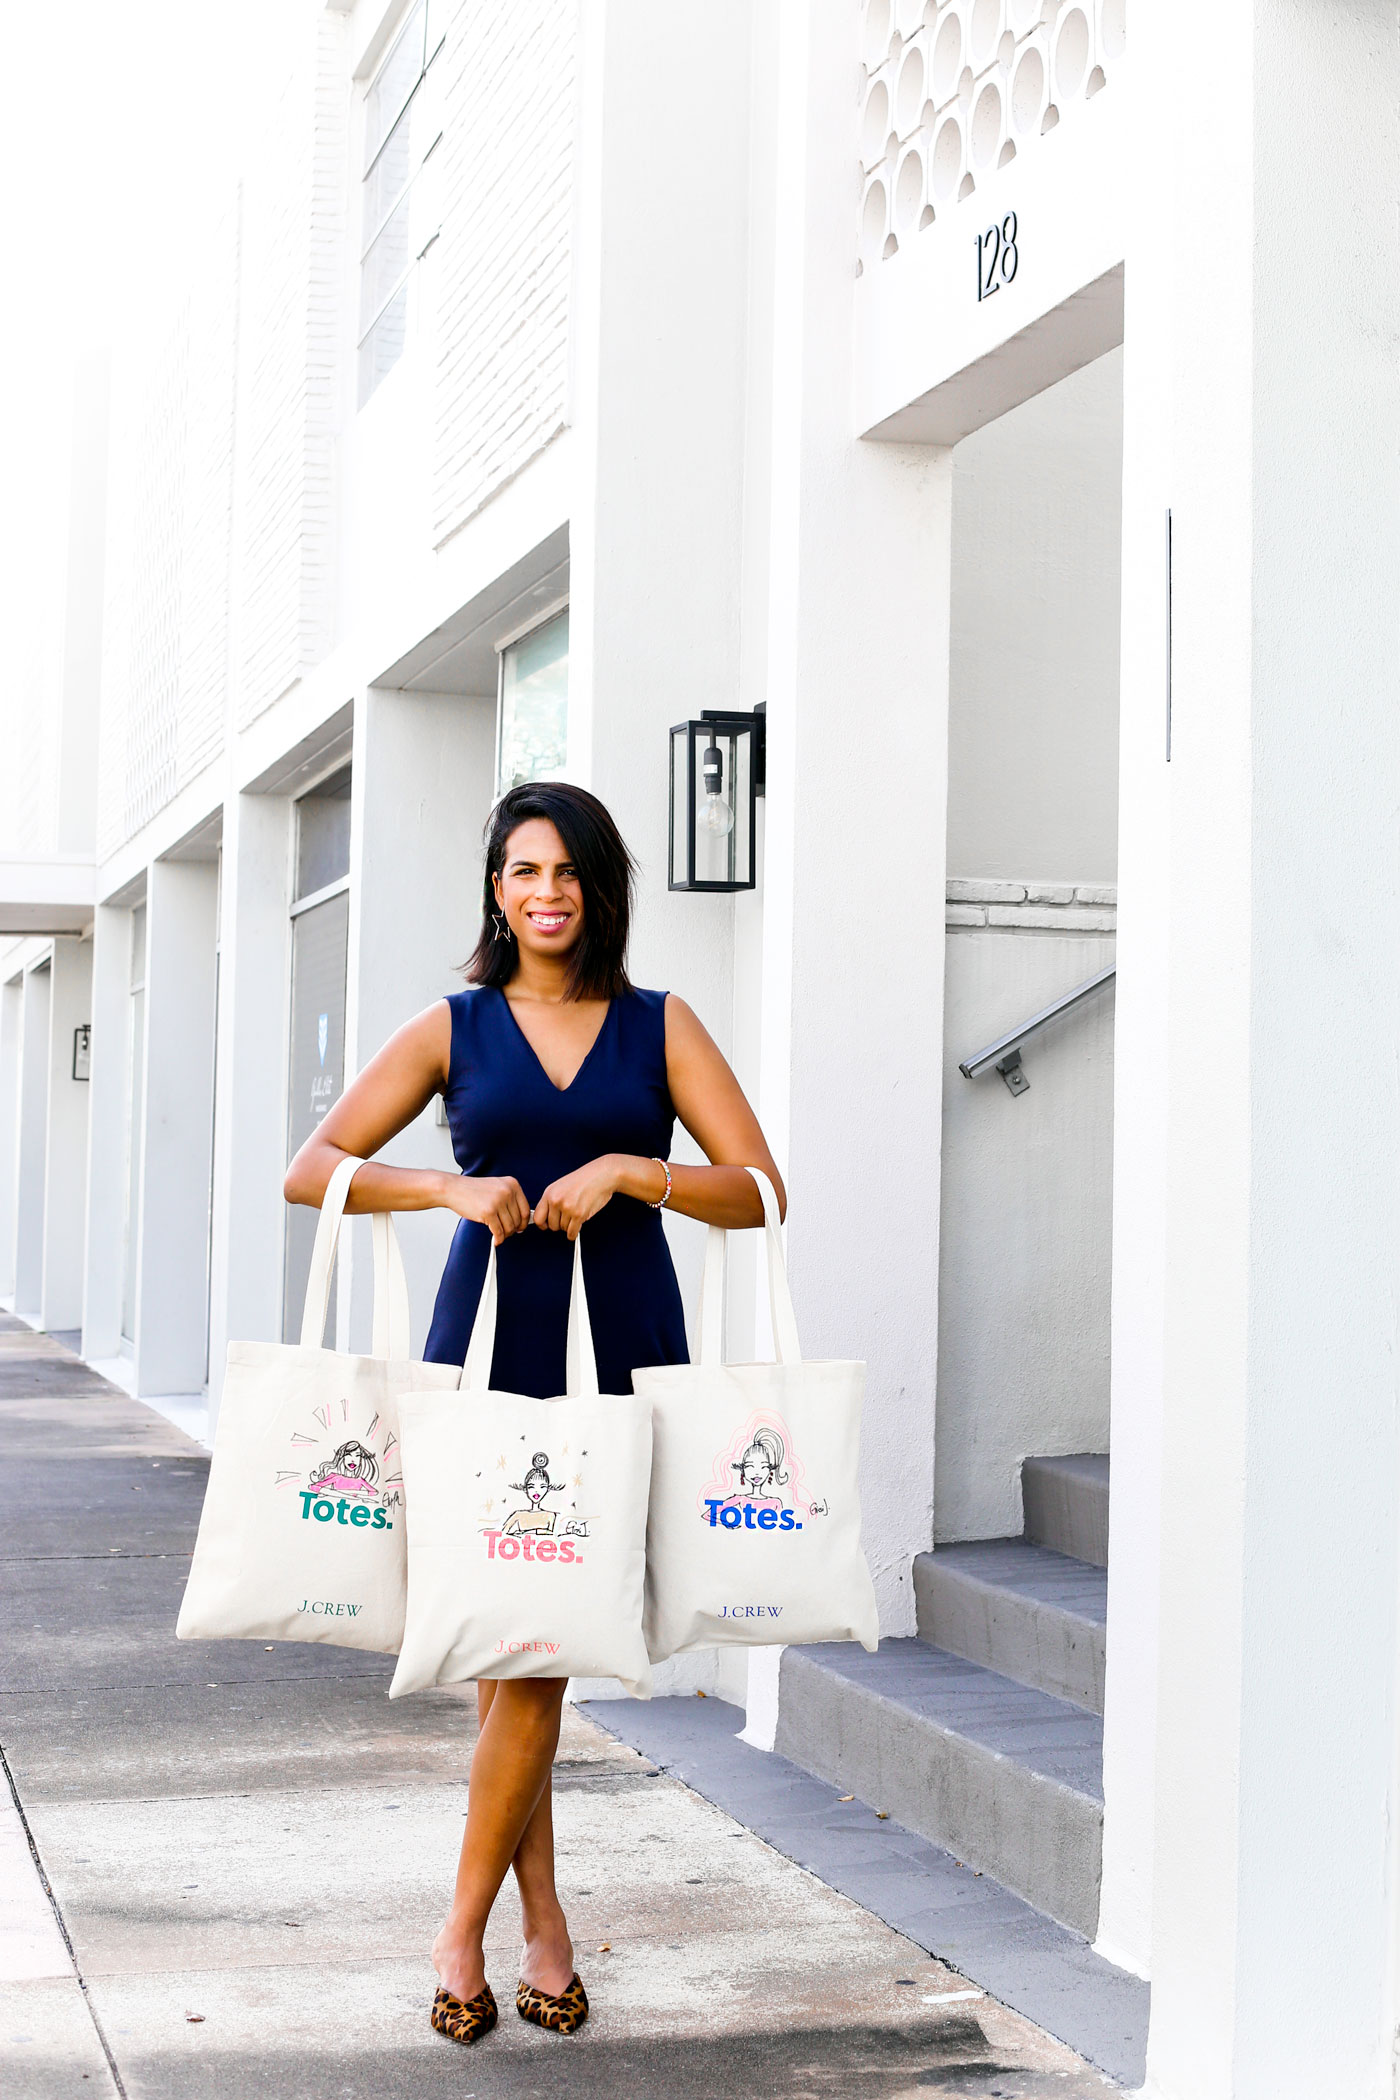 #withatwist custom totes by Gissi Jimenez for J.Crew